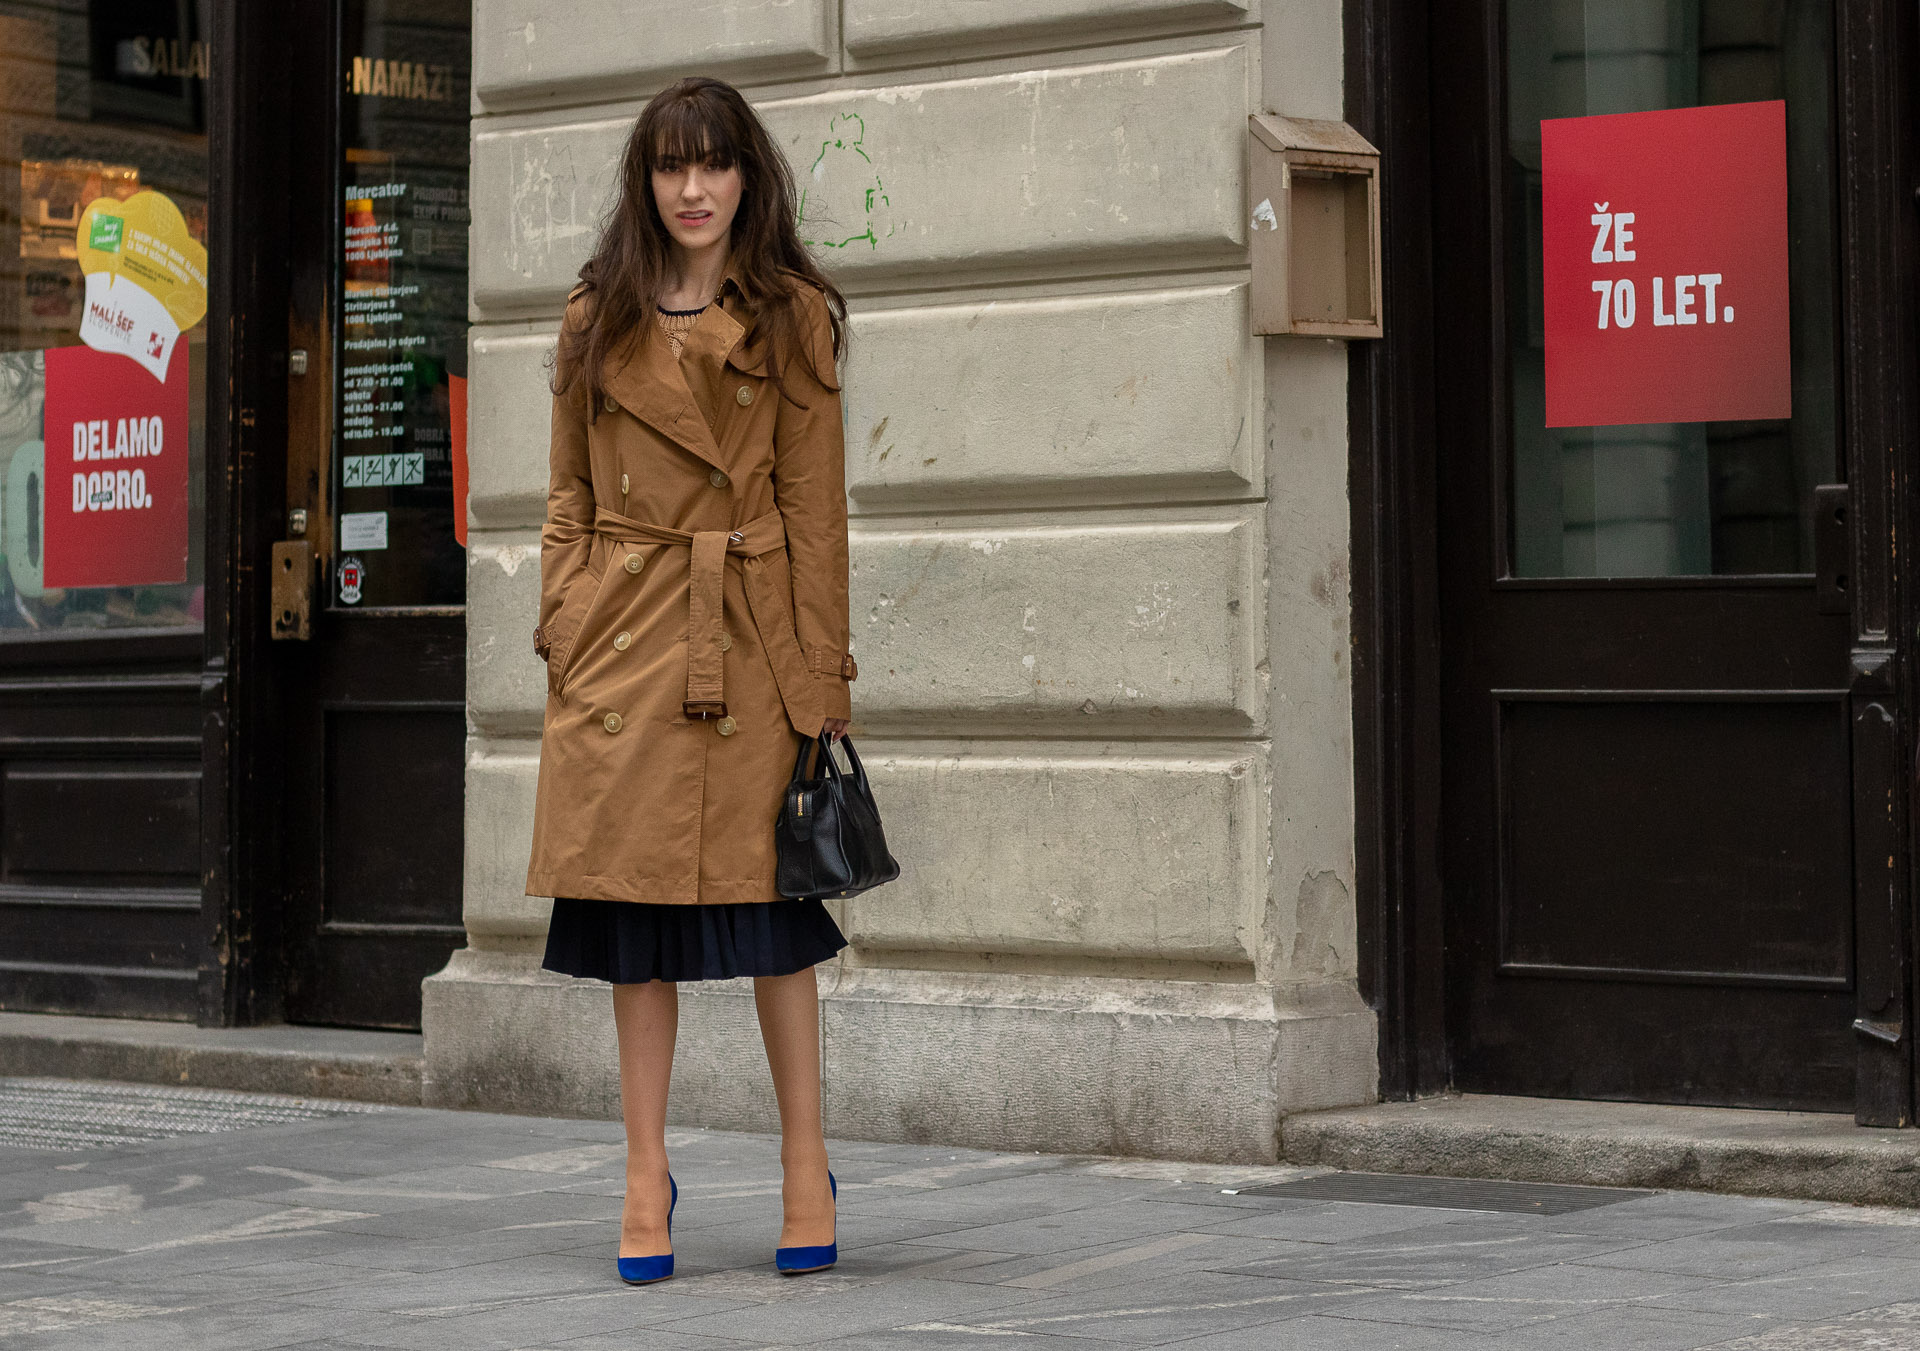 Beautiful Fashion blogger Veronika Lipar of Brunette from Wall Street wearing camel Burberry trench coat and blue pleated midi skirt with Gianvito Rossi blue pumps on the street in spring